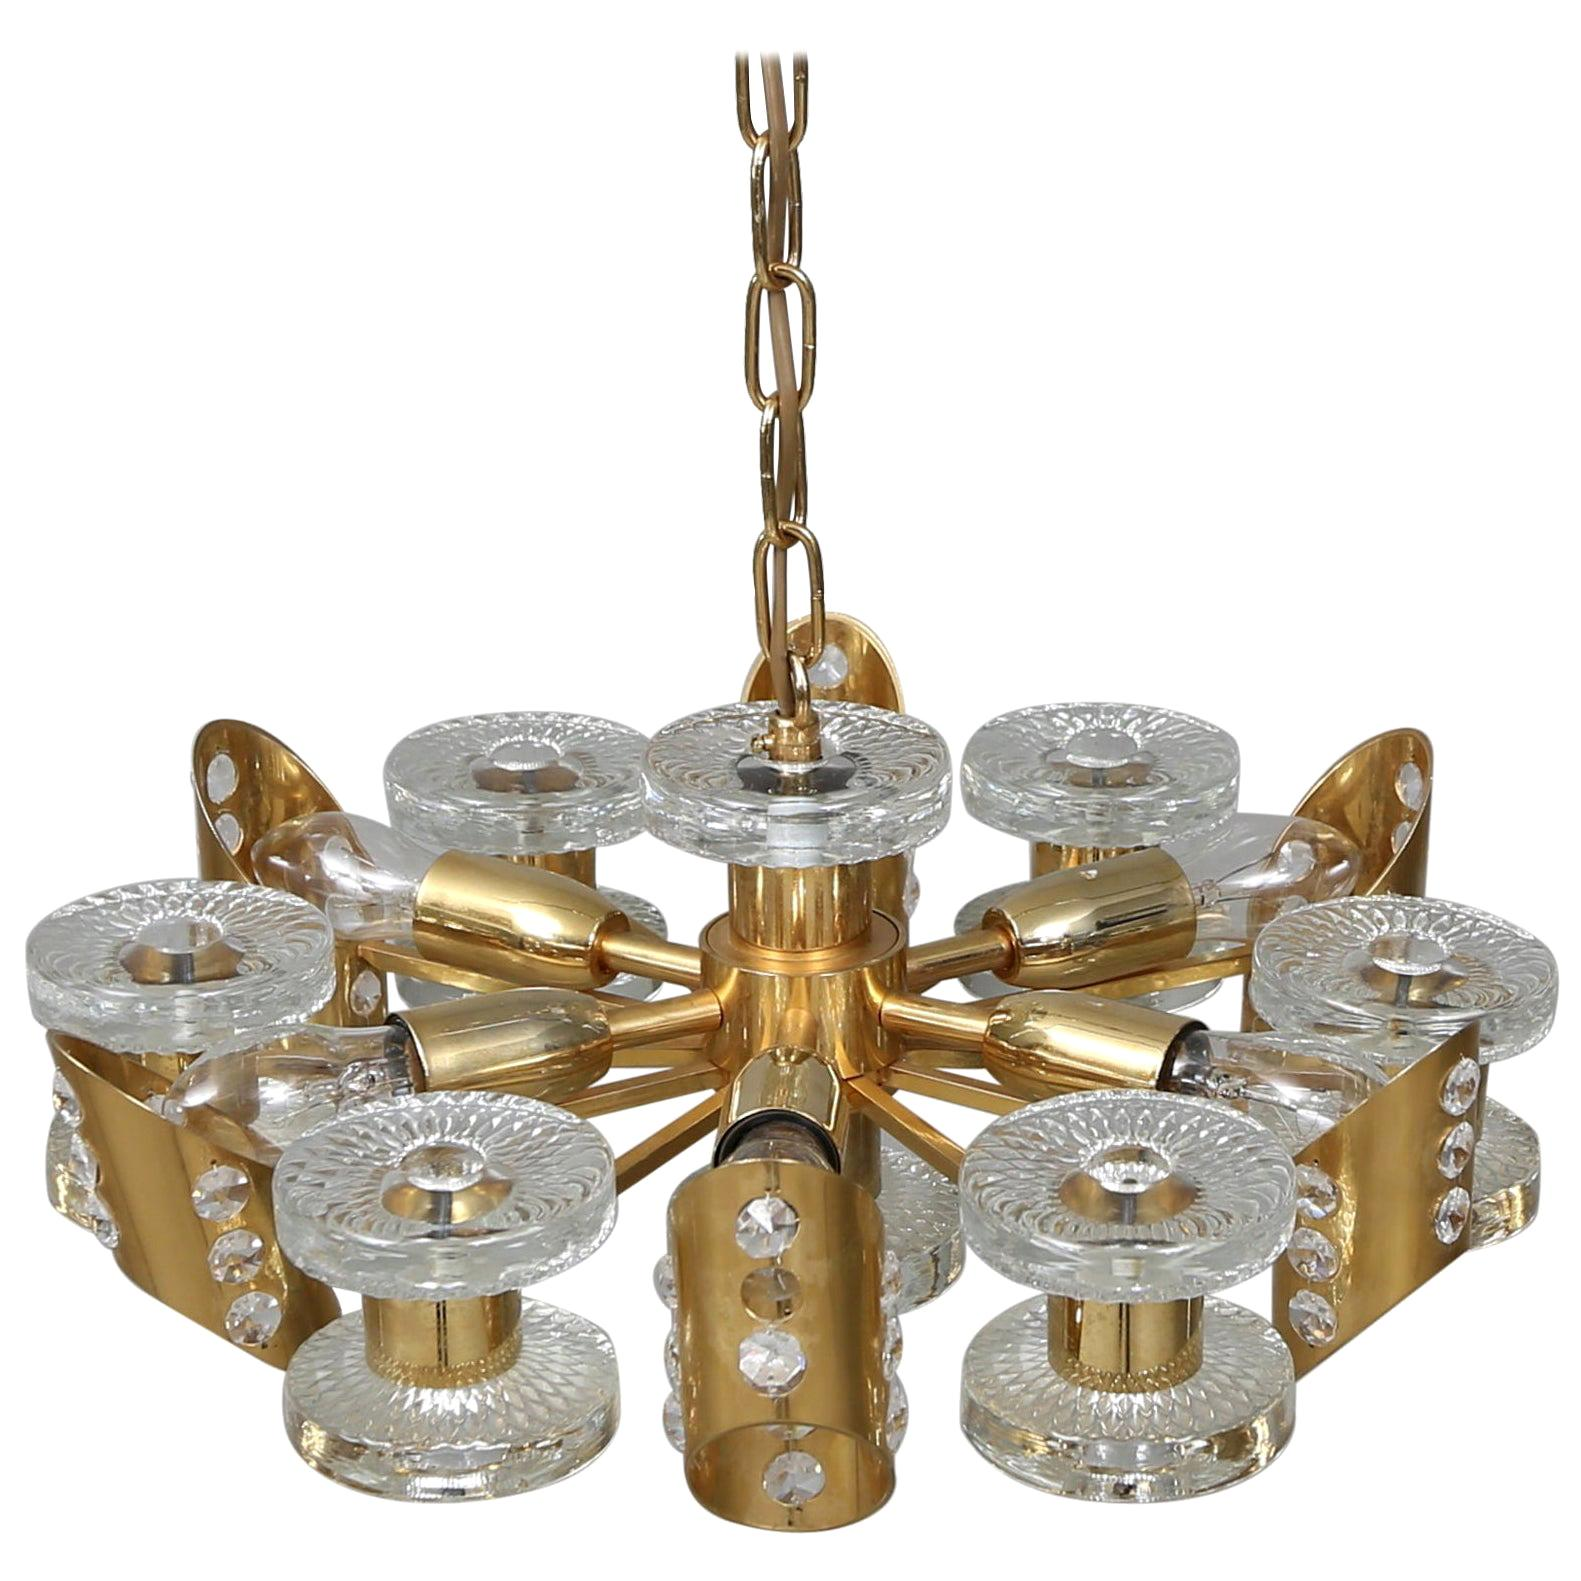 1960s Brass and Crystal Midcentury Chandelier